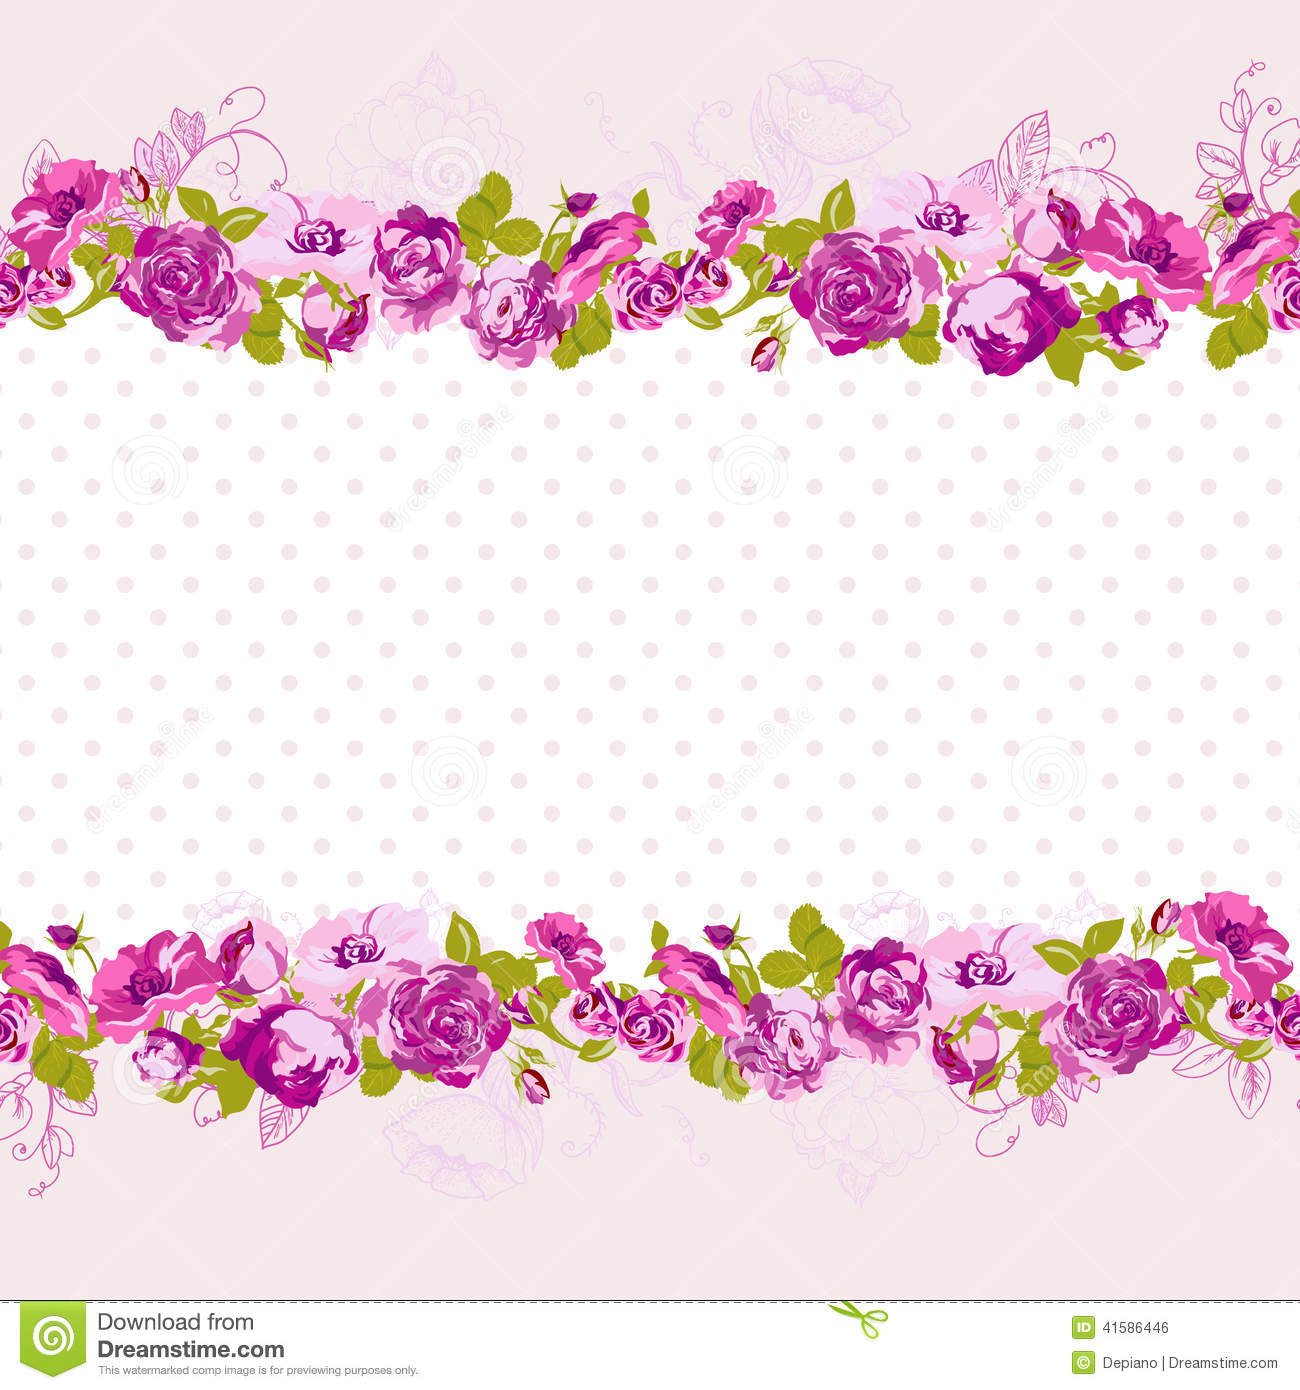 background design for birthday card ; seamless-border-blossom-roses-vector-floral-greeting-card-spring-background-wedding-birthday-invitation-design-41586446